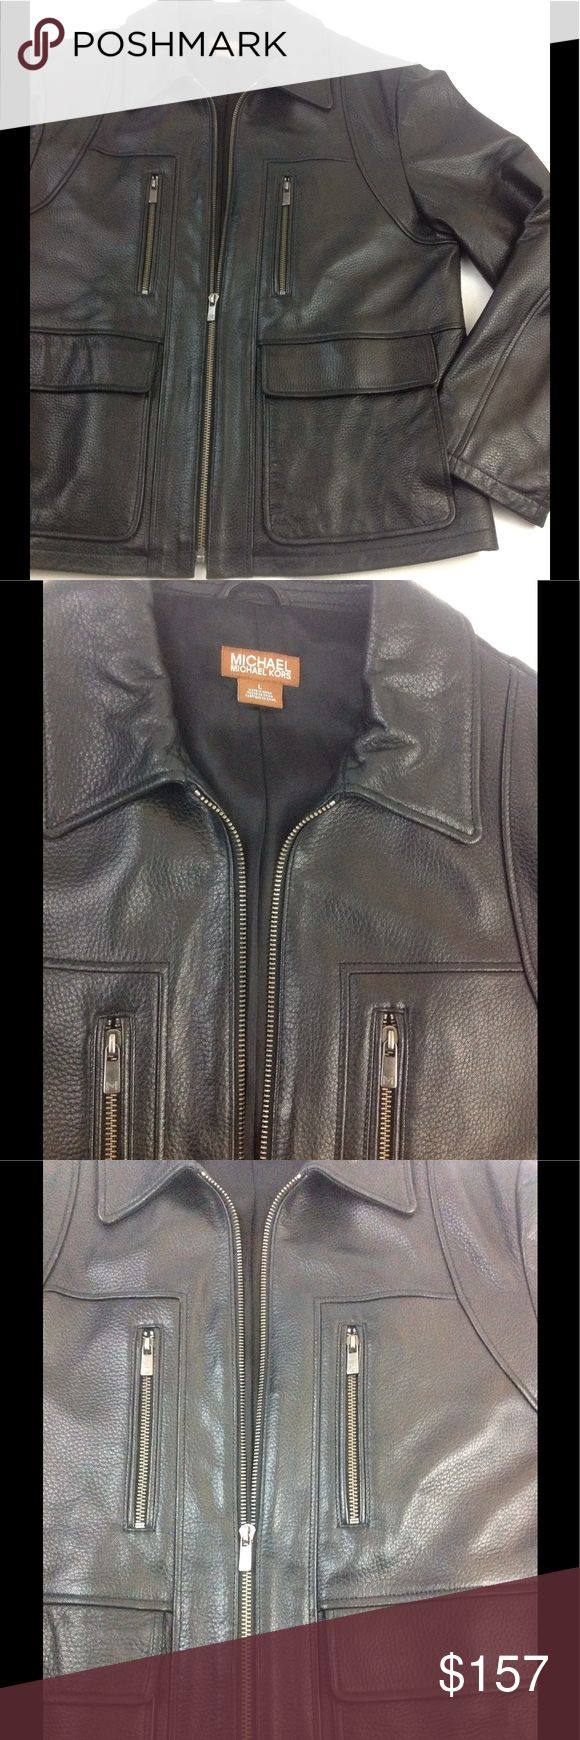 Michael Kors Genuine Black 100% Leather Jacket L Excellent Pre Owned Michael Kors Genuine Black 100% Leather Jacket L, make offers its priced to sell, no low balls, no email, no txt, no trades Michael Kors Jackets & Coats